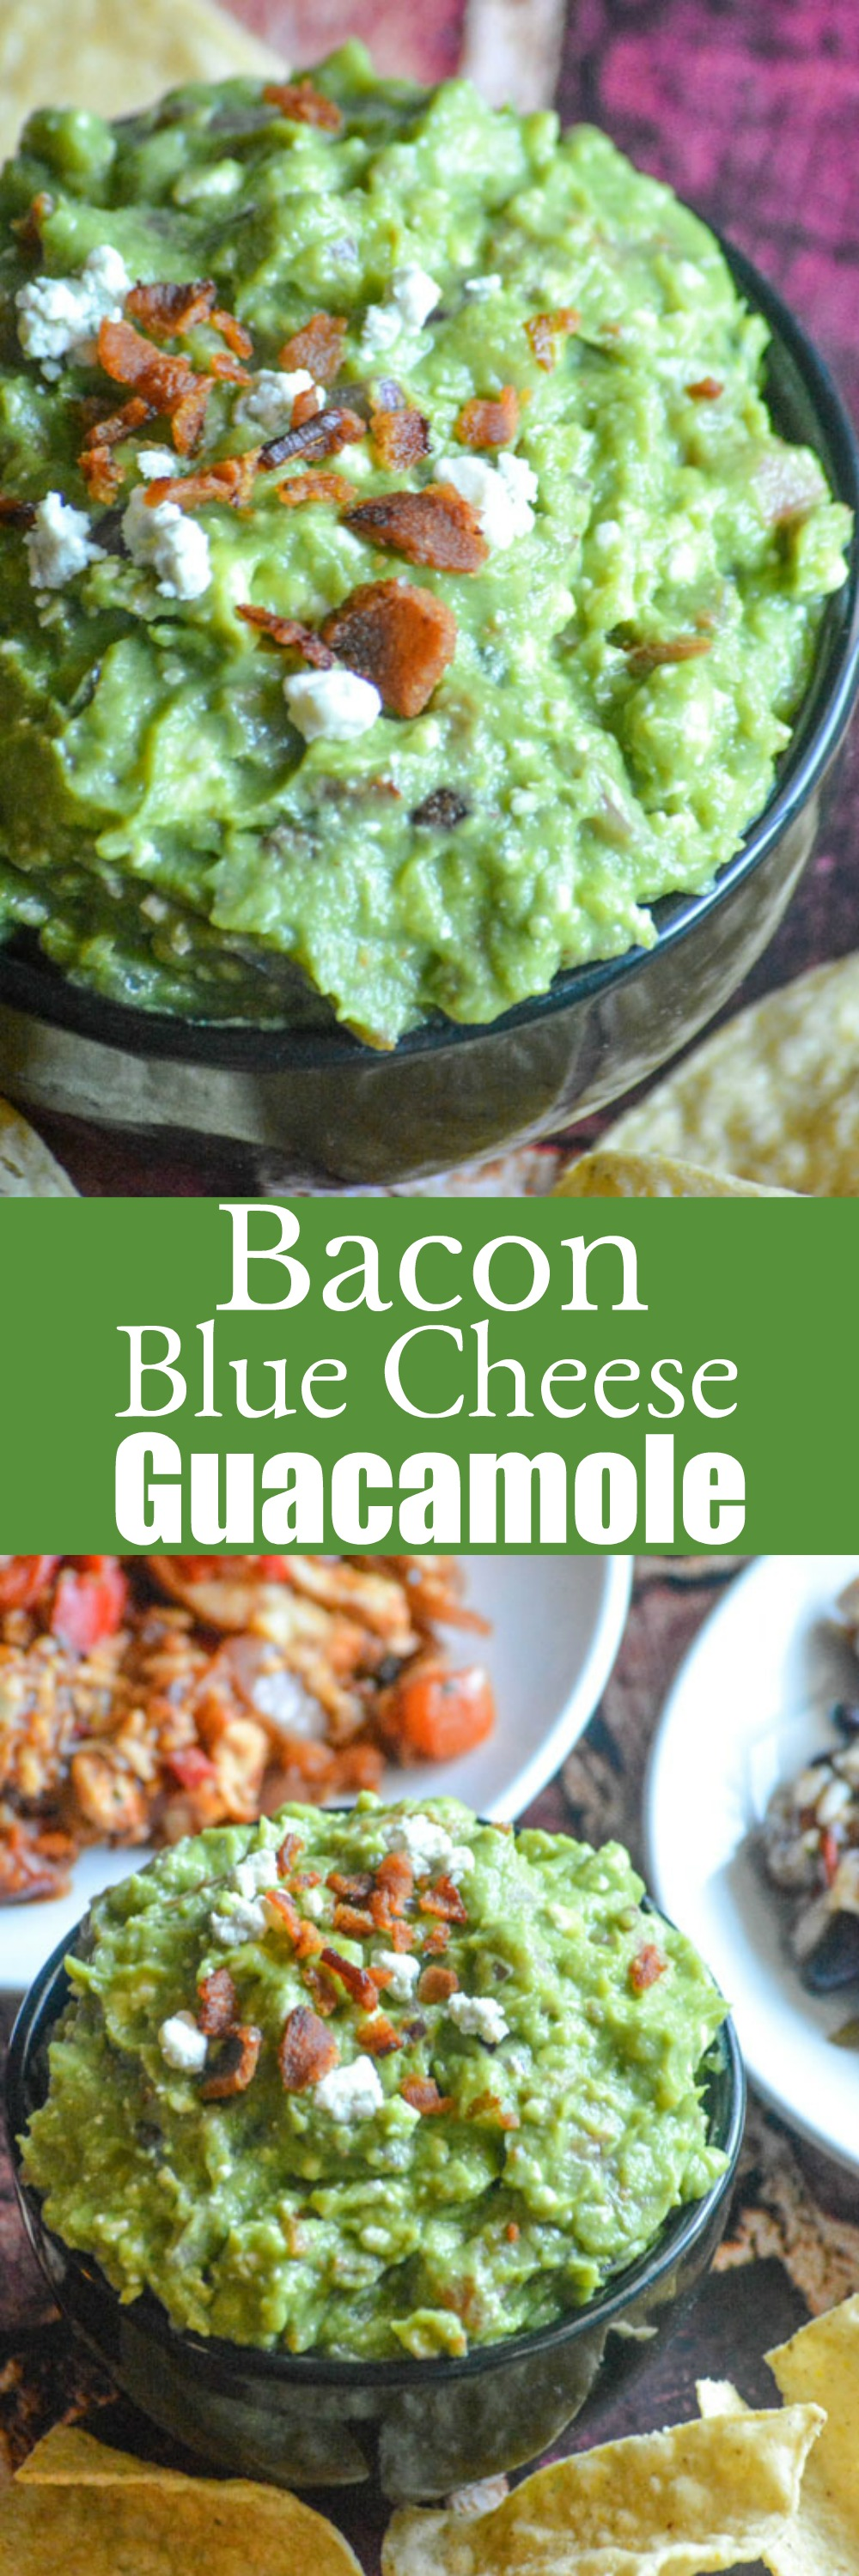 Fresh, creamy guacamole is a fan favorite appetizer, dip, even the perfect Tex Mex condiment. Up your game, and dress your guac to impress, by stirring in savory bacon bits and tangy blue cheese crumbles in this Bacon Blue Cheese Guacamole.